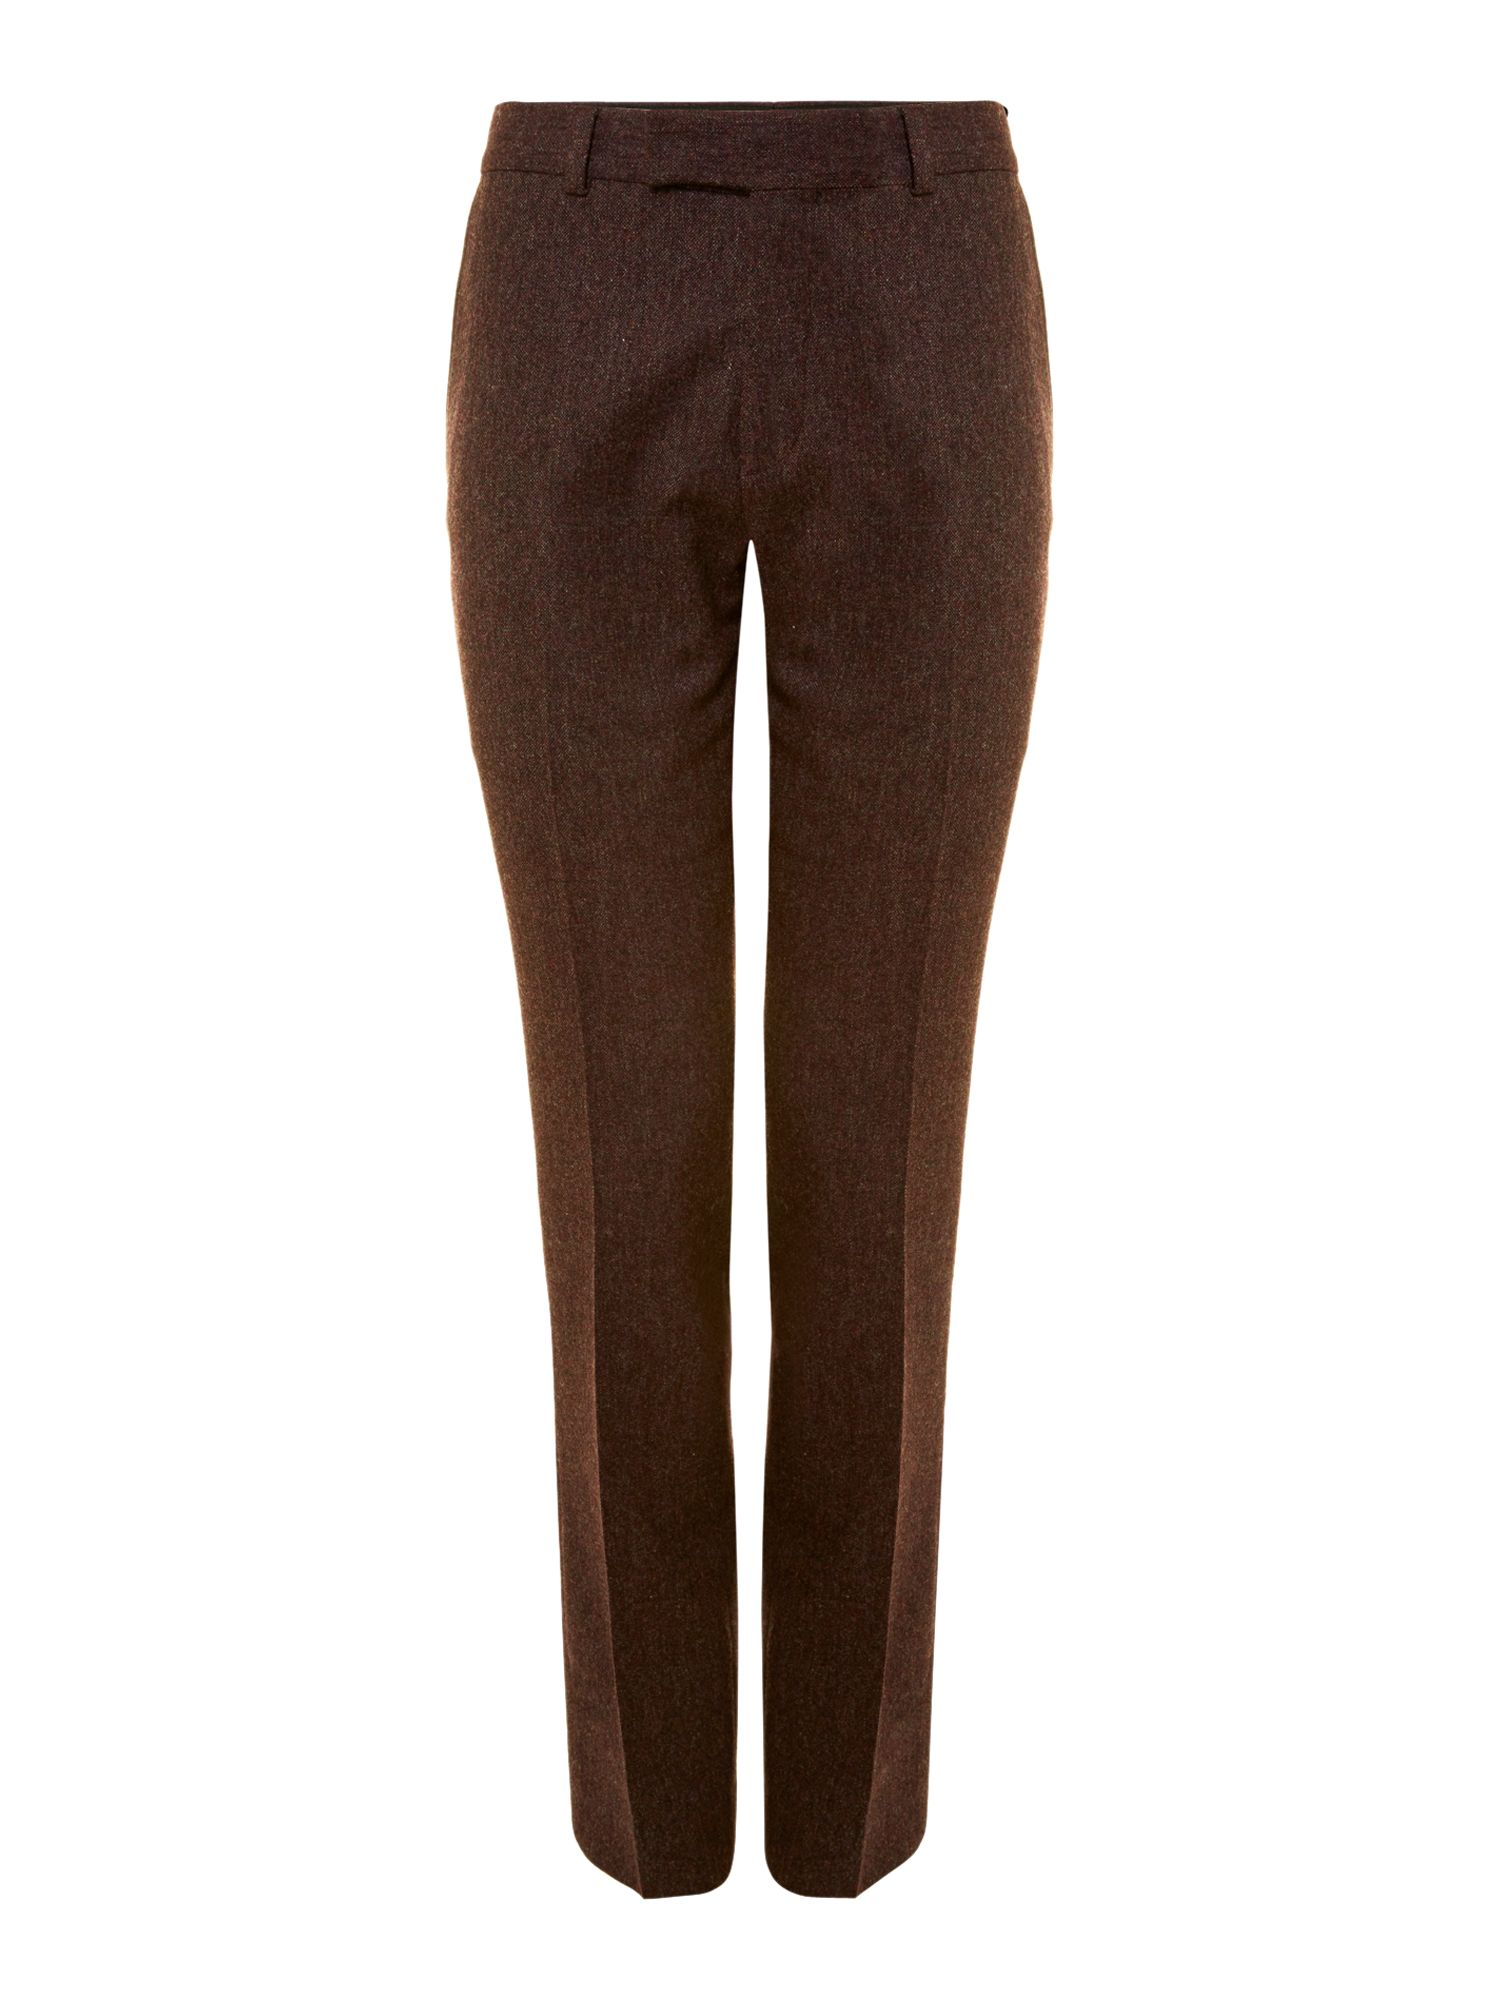 British tweed slim suit trousers